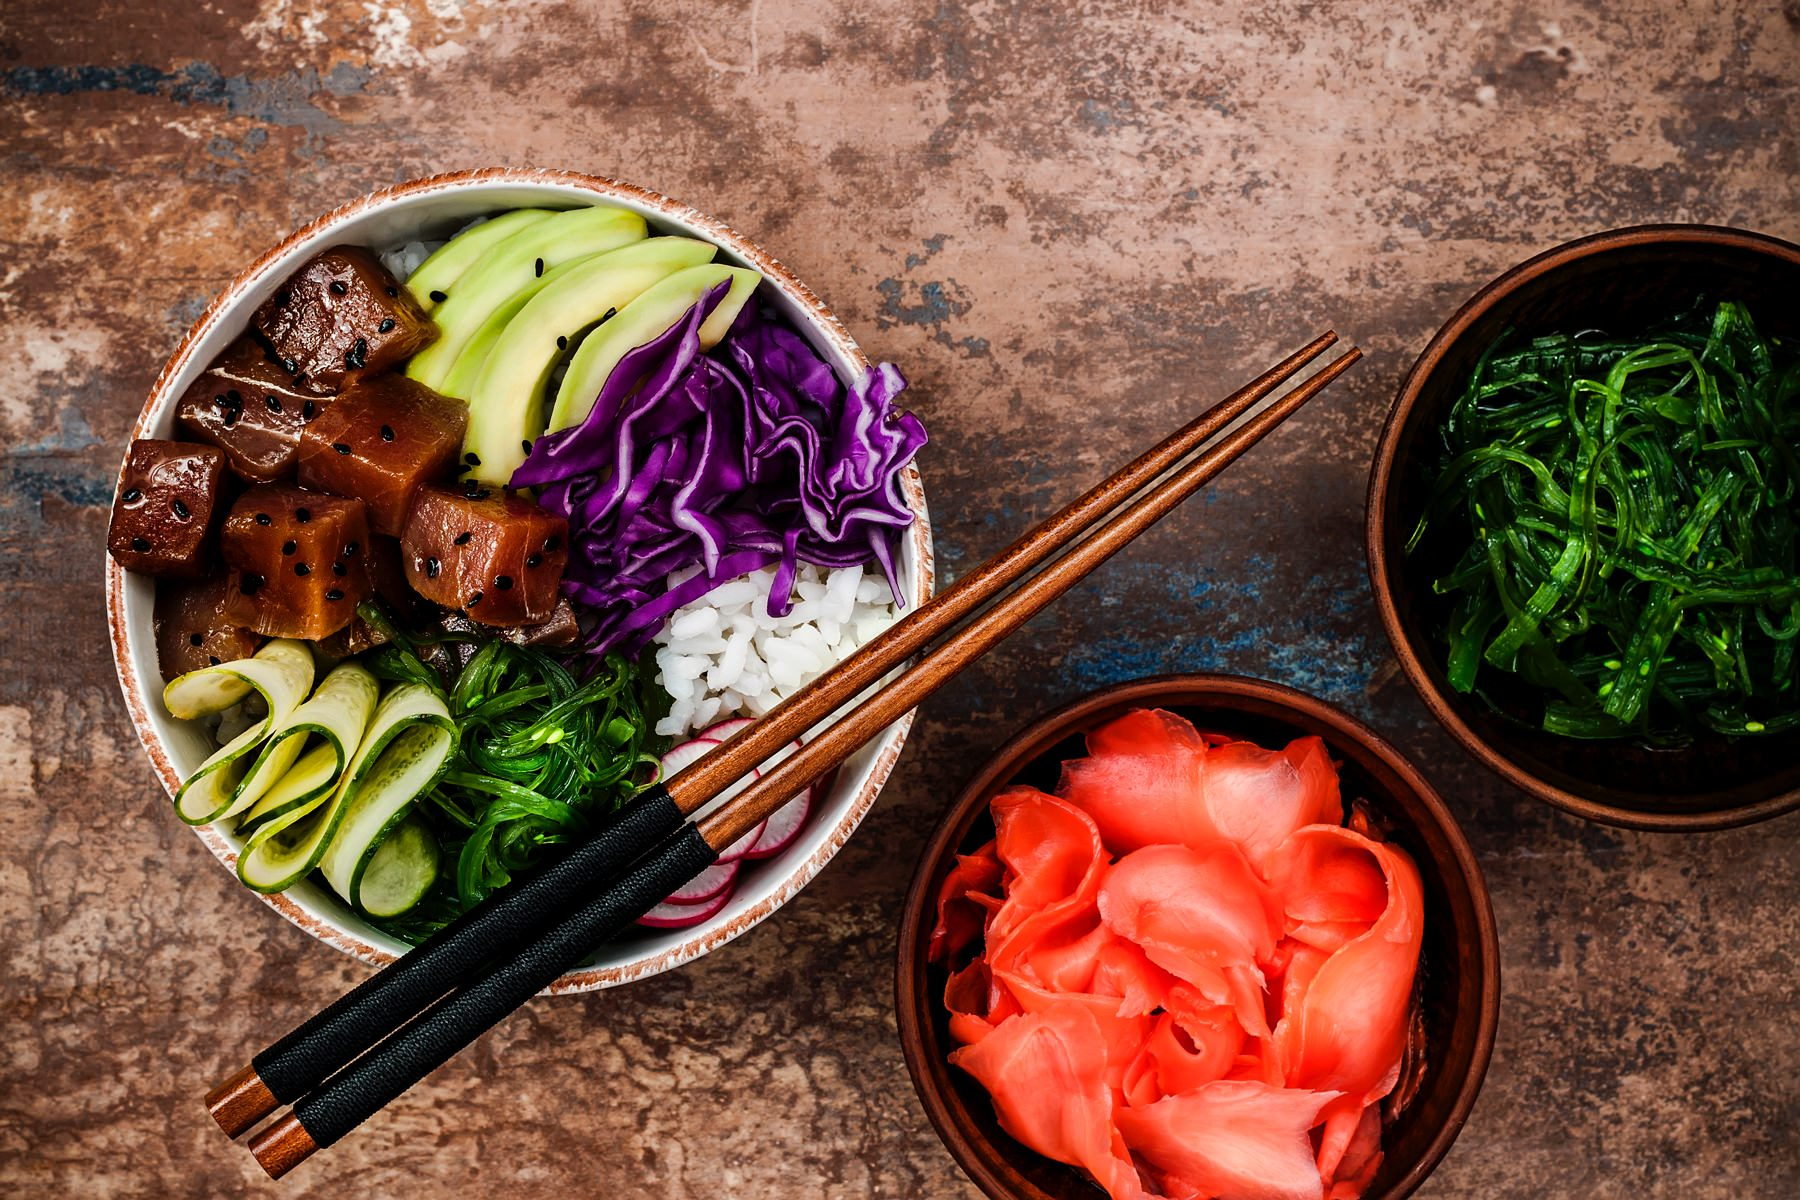 Cali-style poke bowl recipes